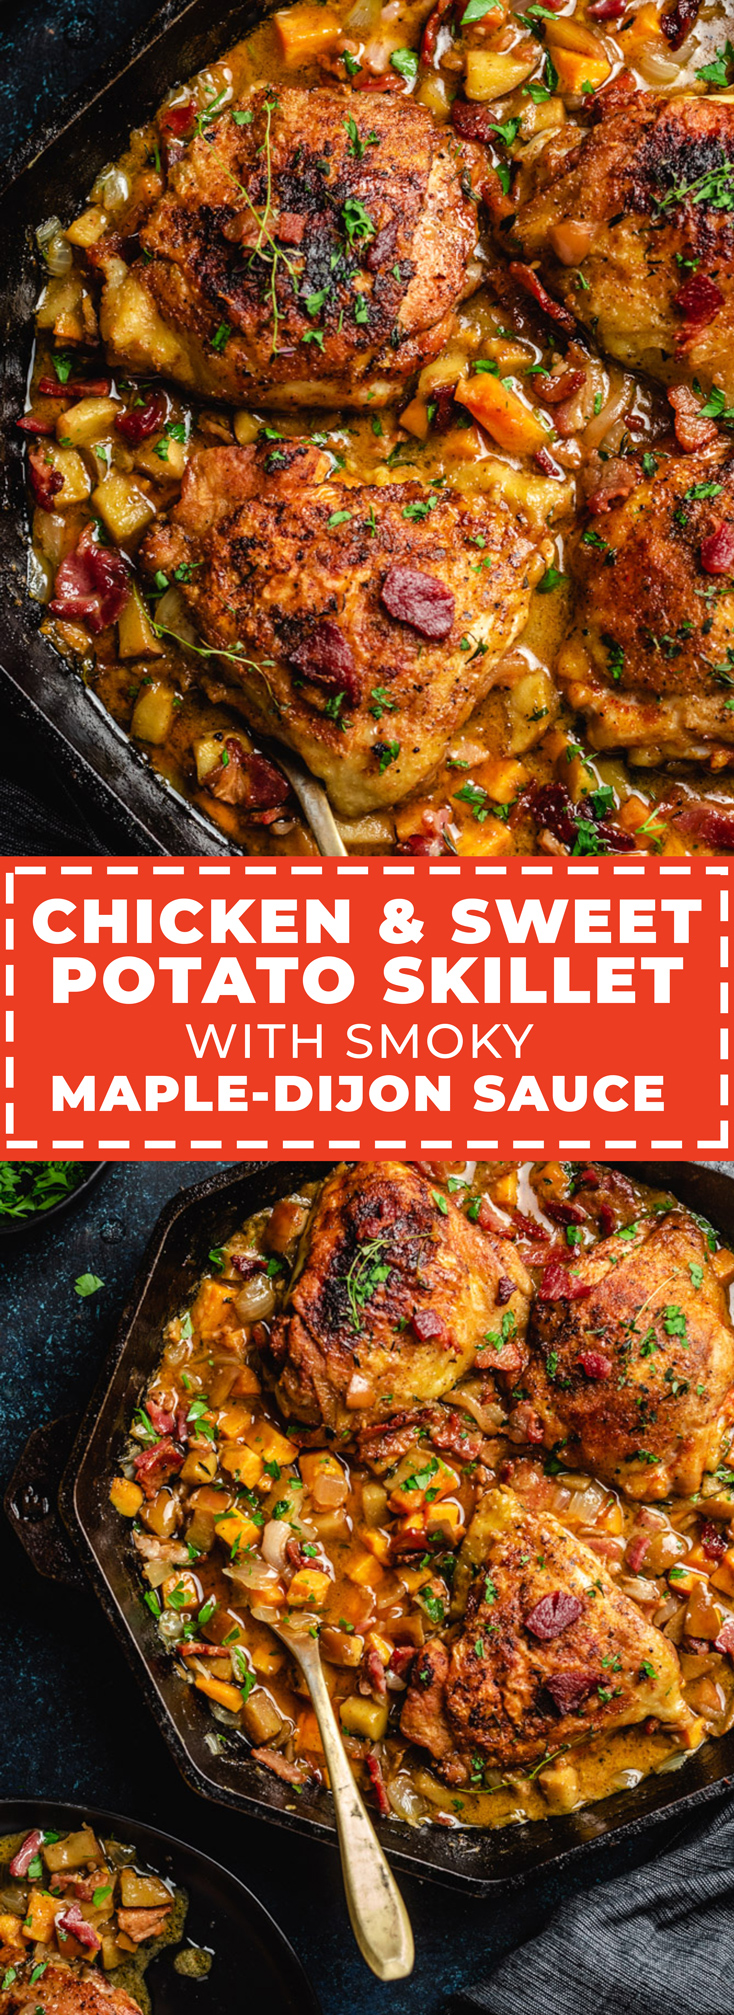 In this easy Chicken and Sweet Potato Skillet, tender-crisp chicken thighs are nestled into an autumn bounty of sweet potatoes, apples, onion, and bacon, then finished off with a finger-lickin Smoky Maple-Dijon Sauce. | hostthetoast.com